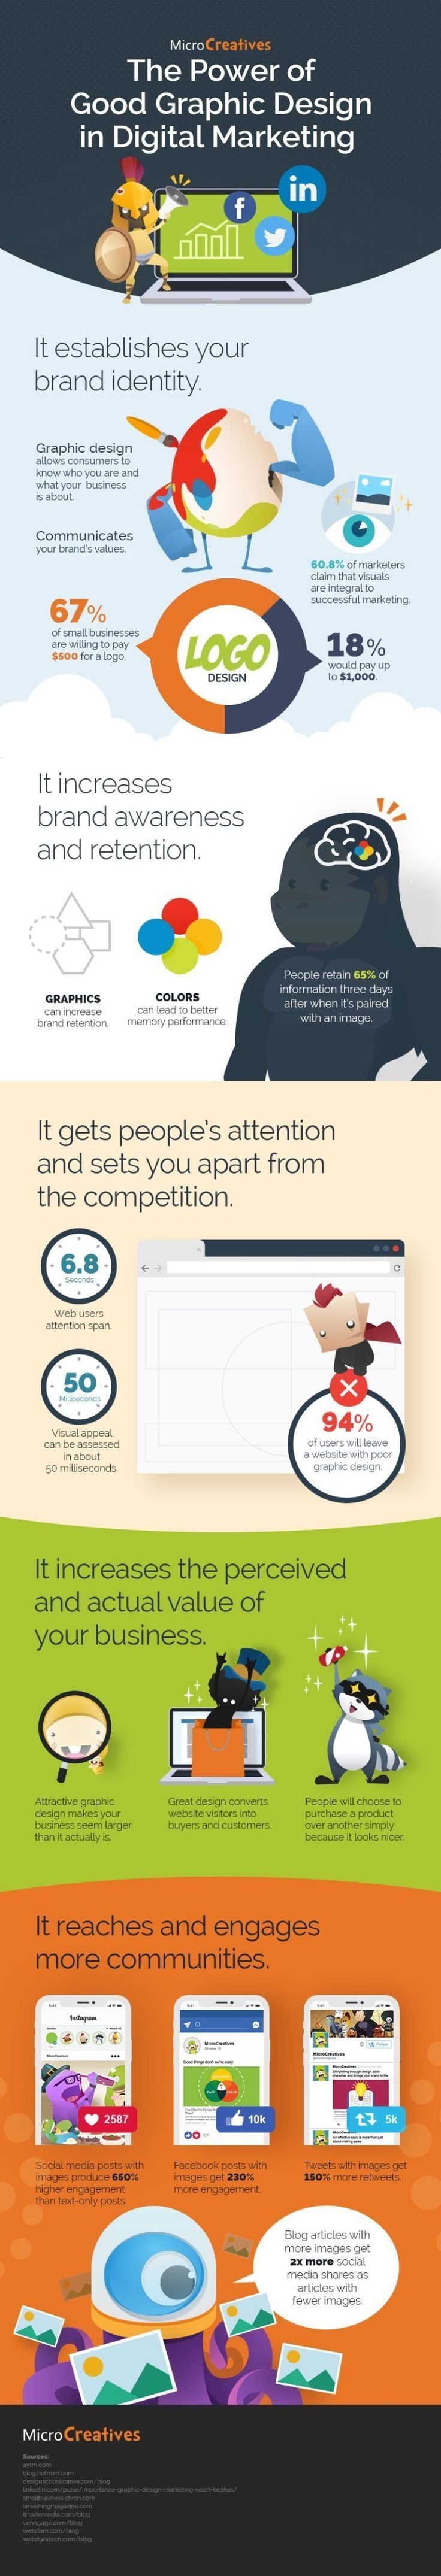 Business infographic : DIGITAL MARKETING The Power Of Good Graphic Design In #DigitalMarketing #in